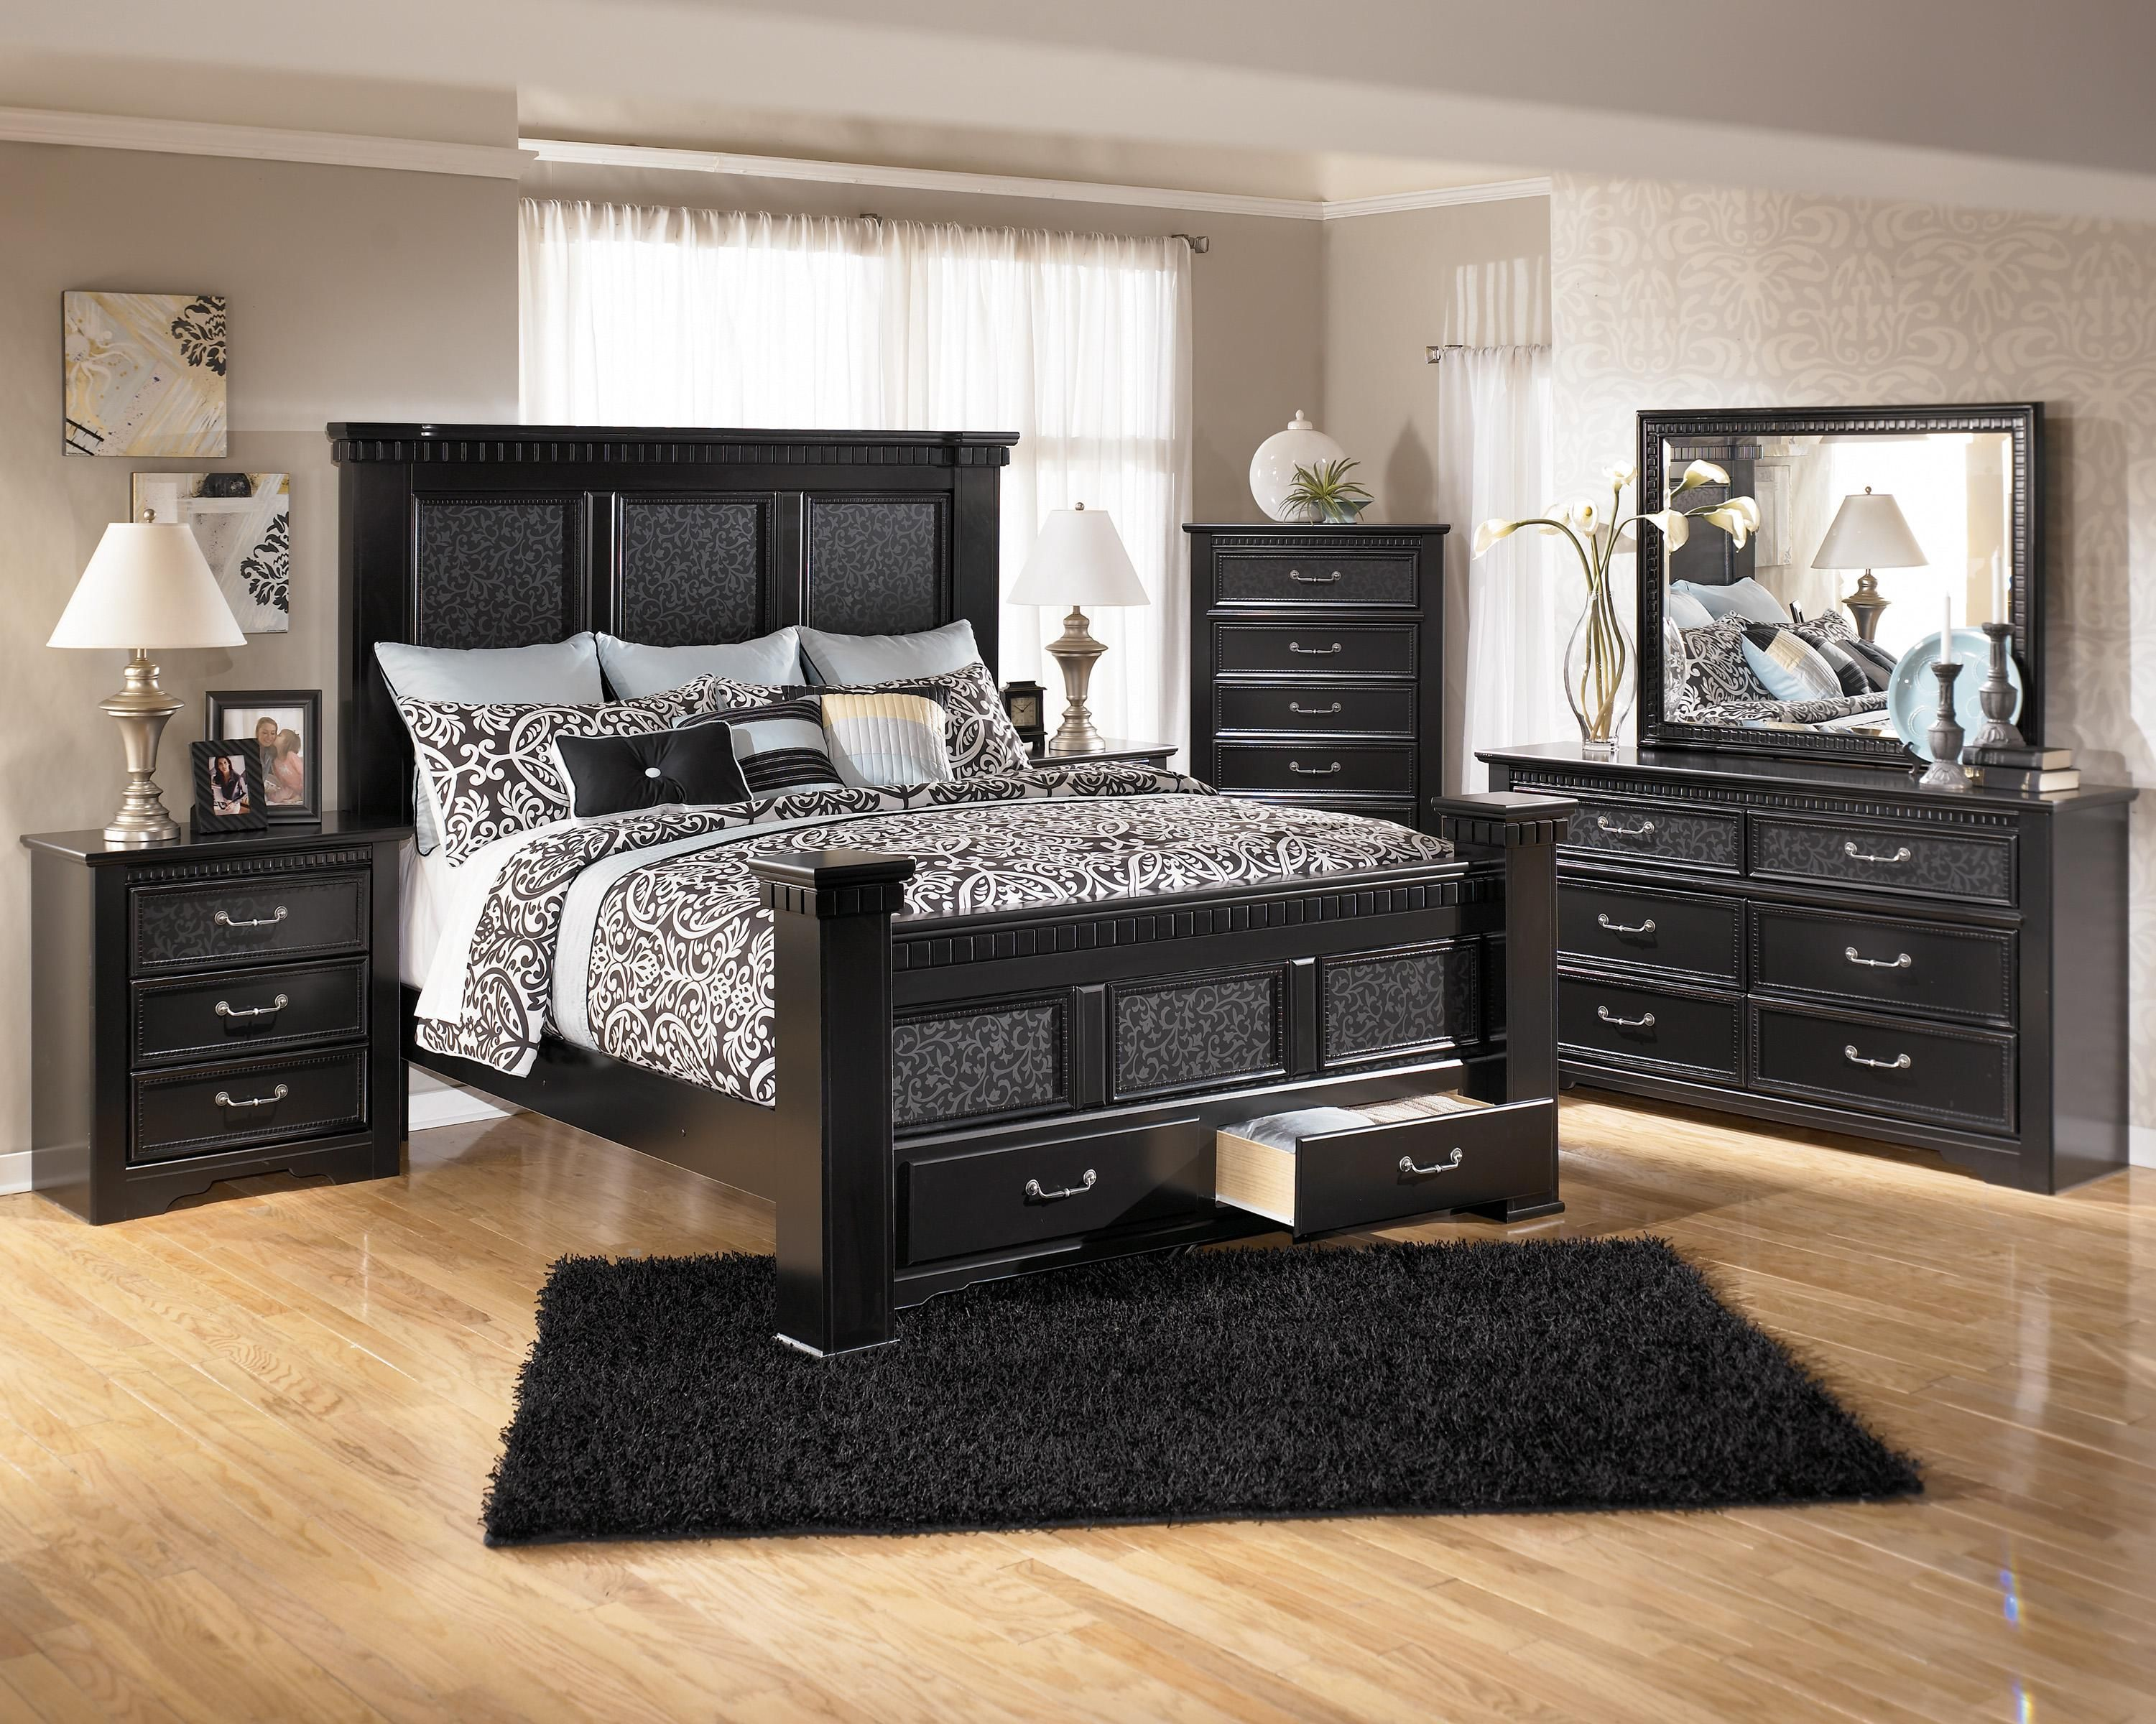 Ashley furniture cavallino bedroom set with mansion poster - Black queen bedroom furniture set ...